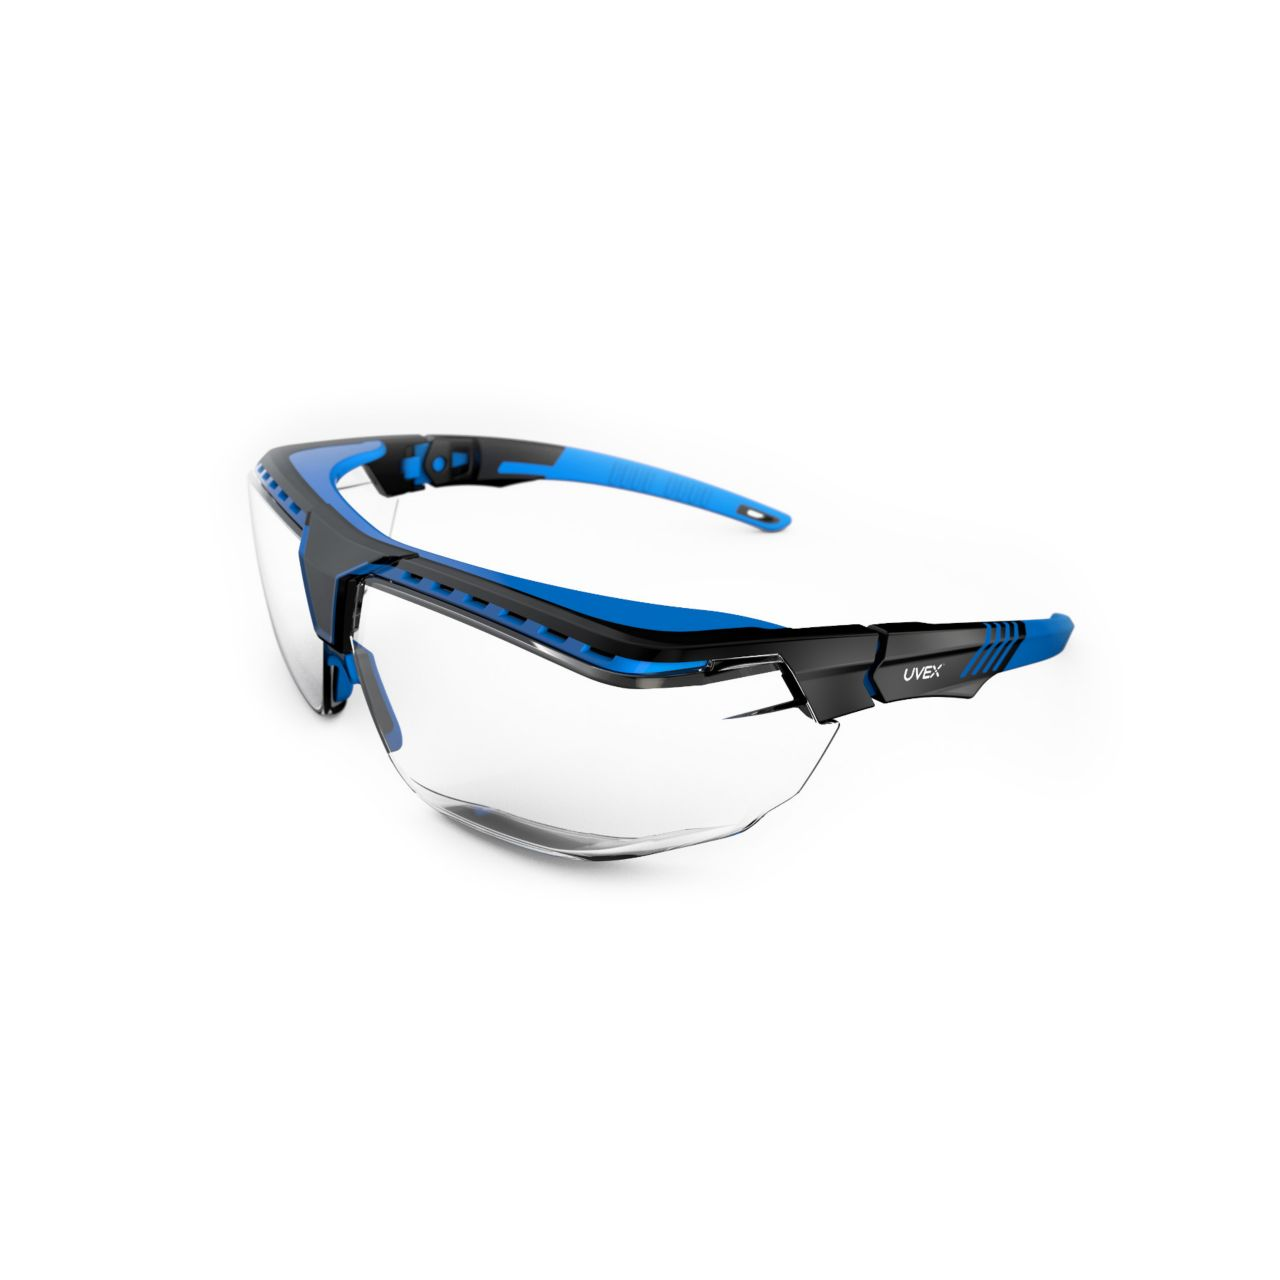 UX_uvex-avatar-otg-safety-glasses_s3853_uvex_avatar_otg_blue_black_clear_wb